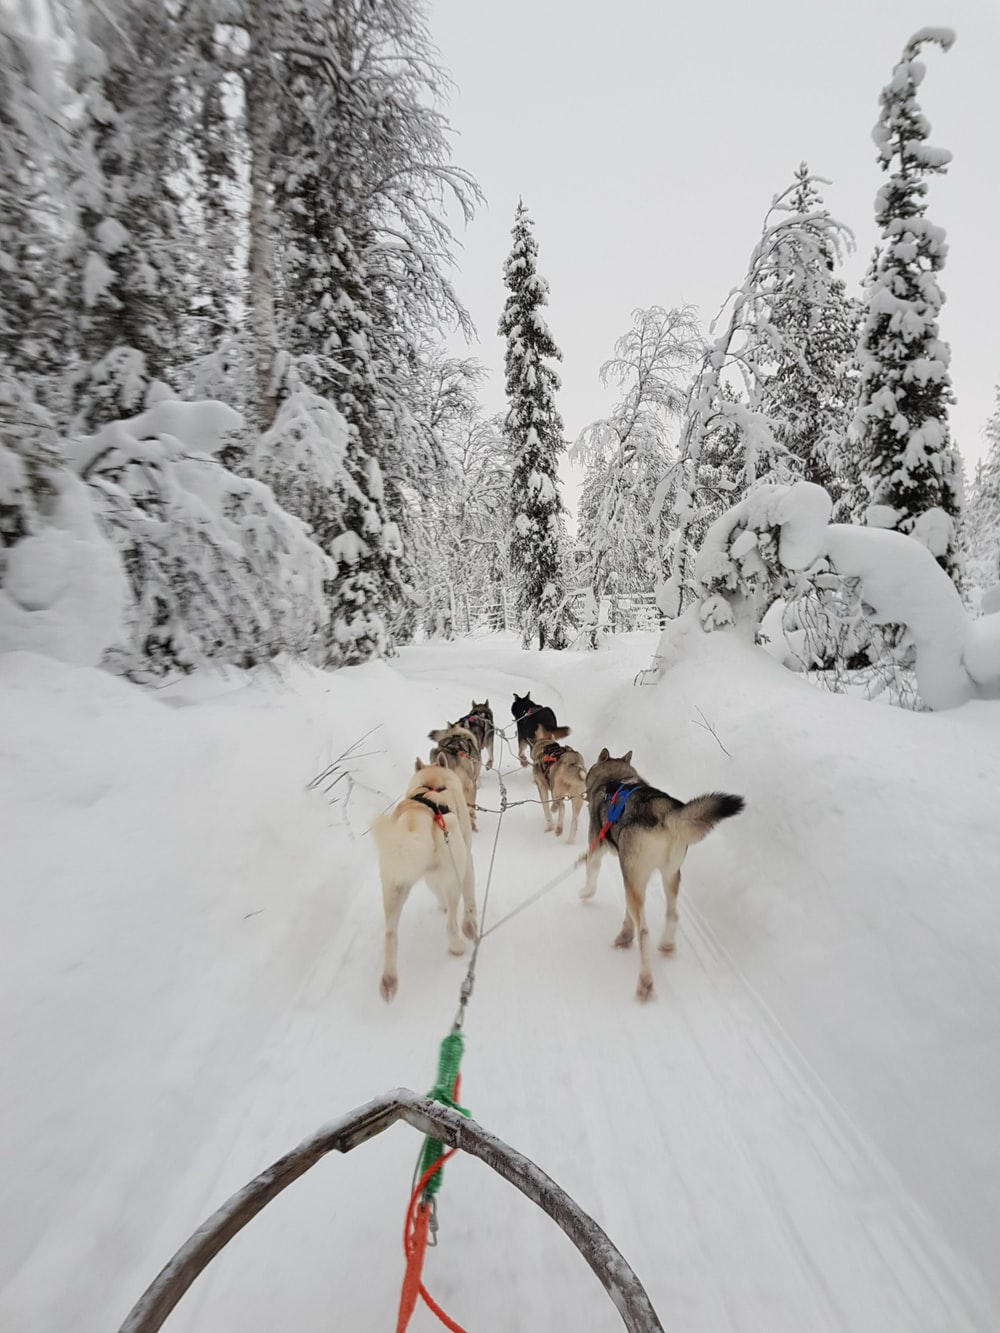 dogs on snow covered ground during daytime